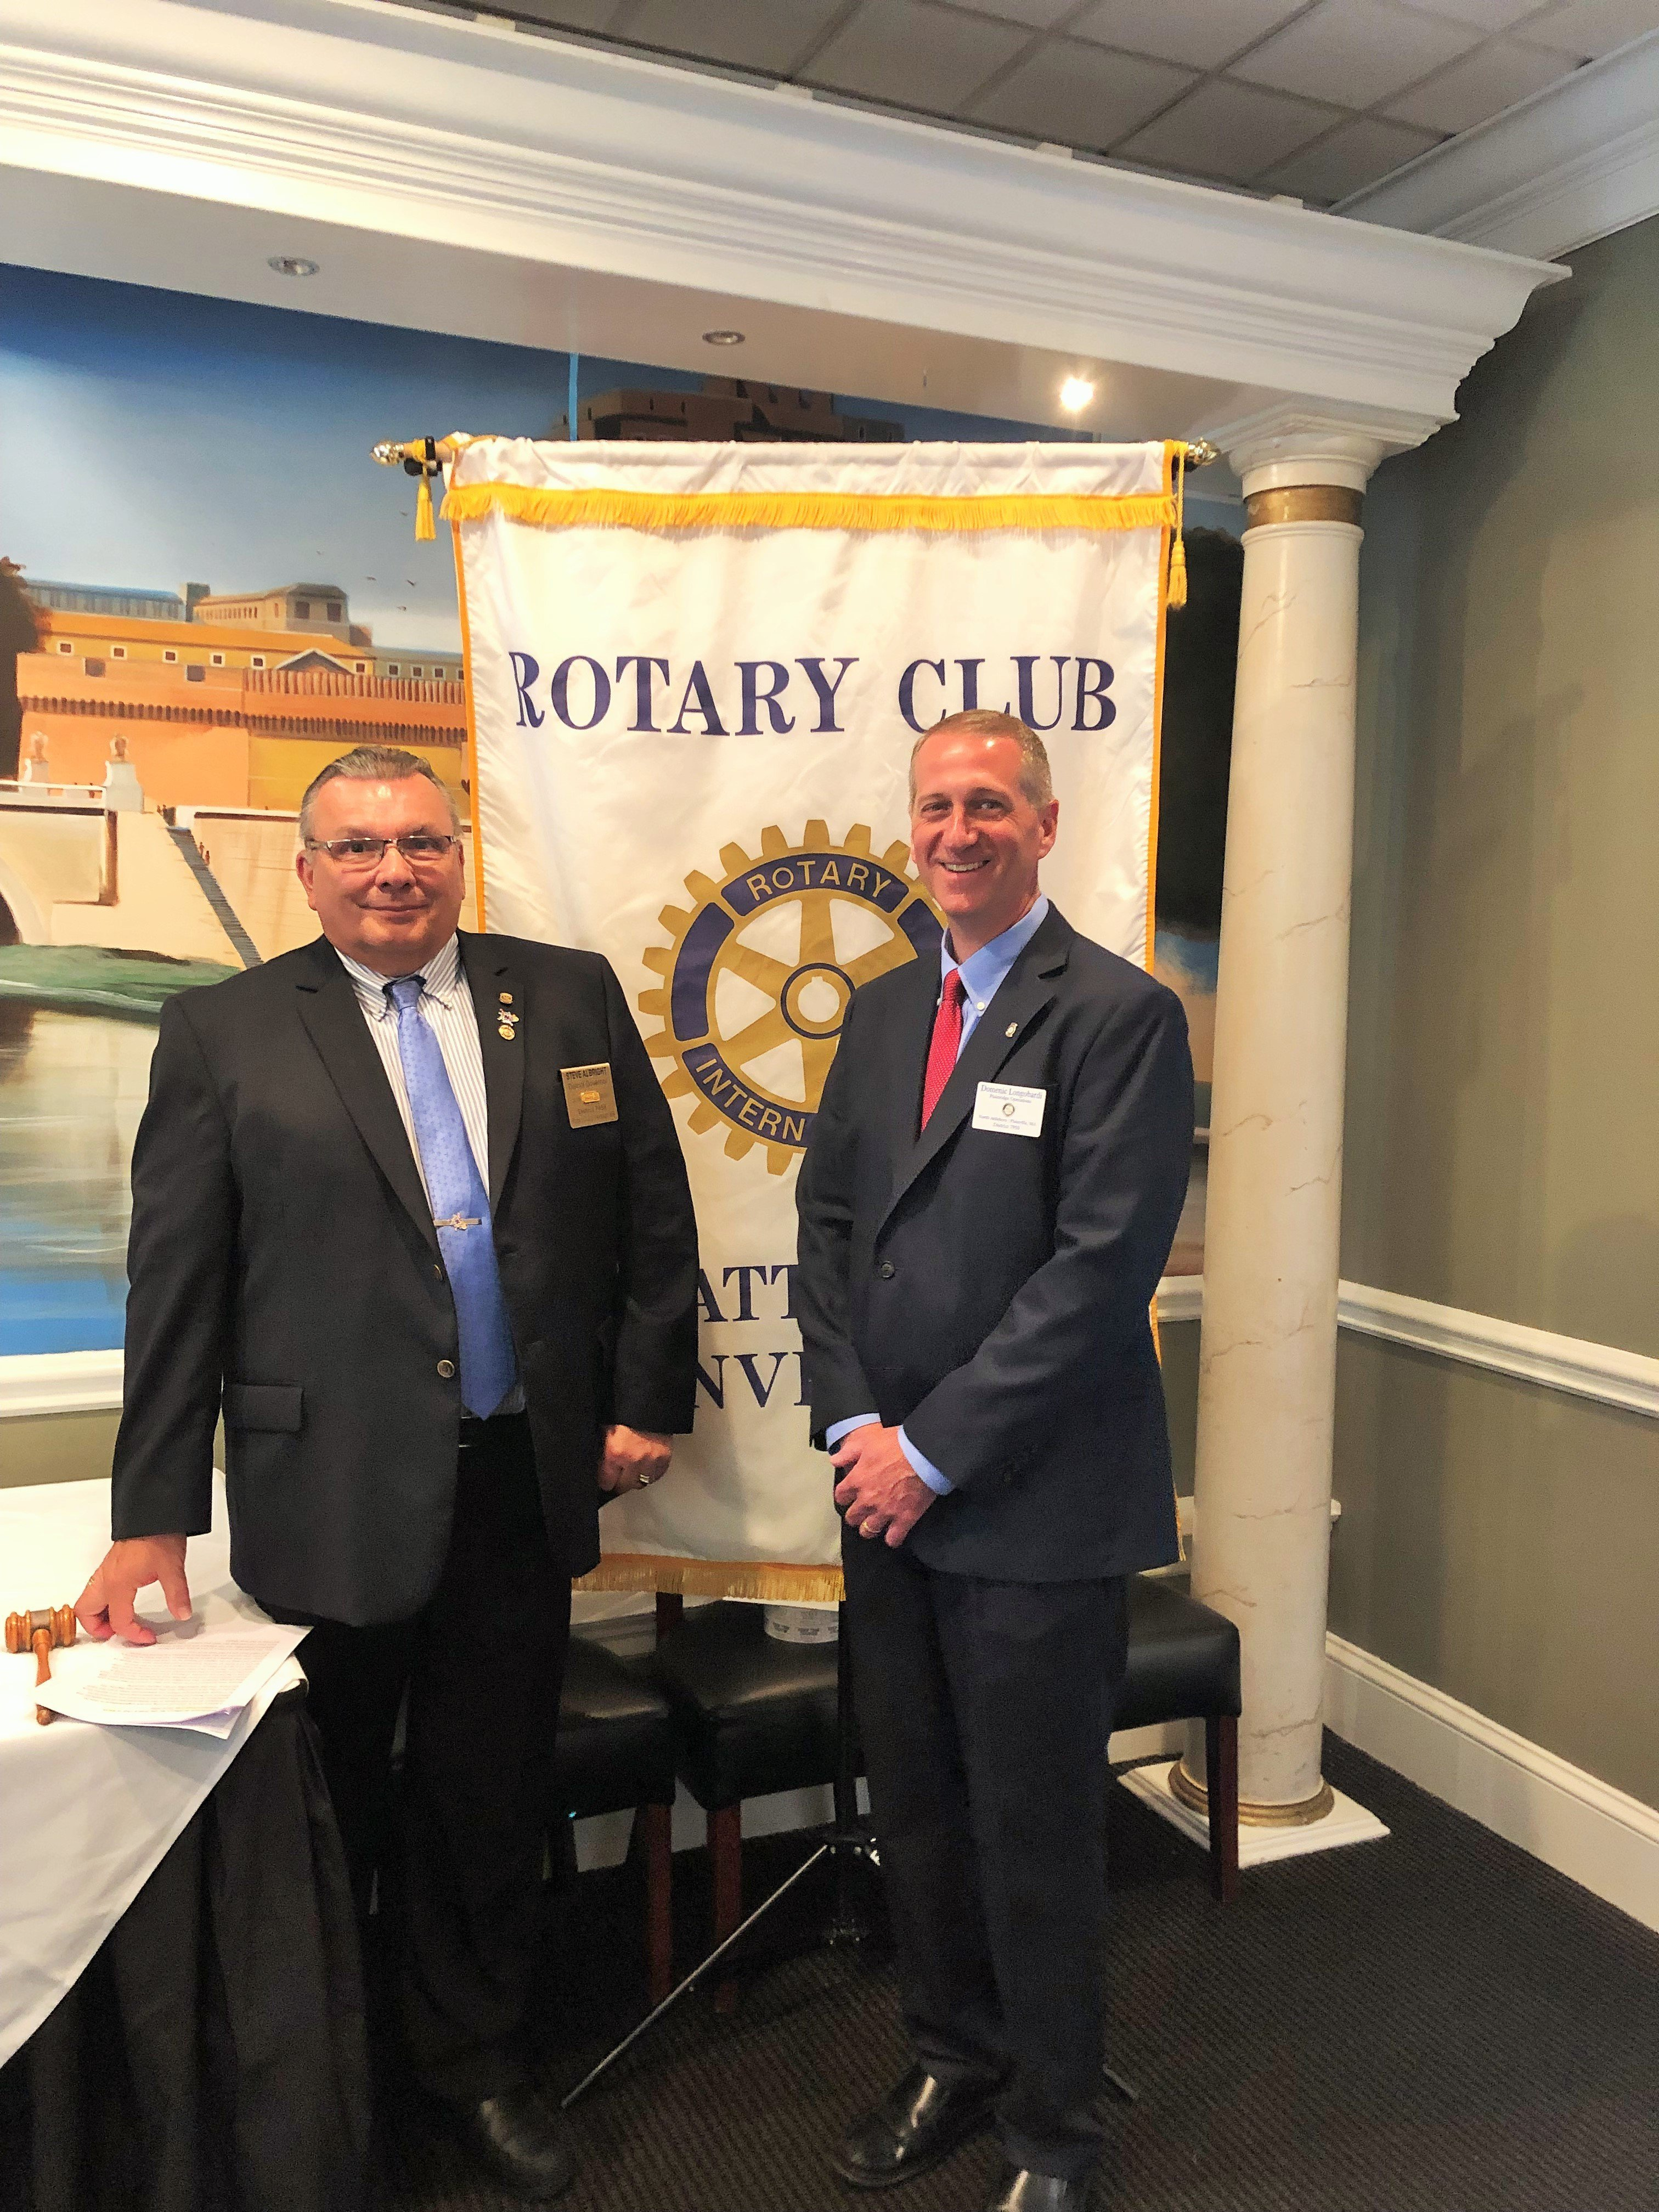 The North Attleborough/Plainville Rotary Club